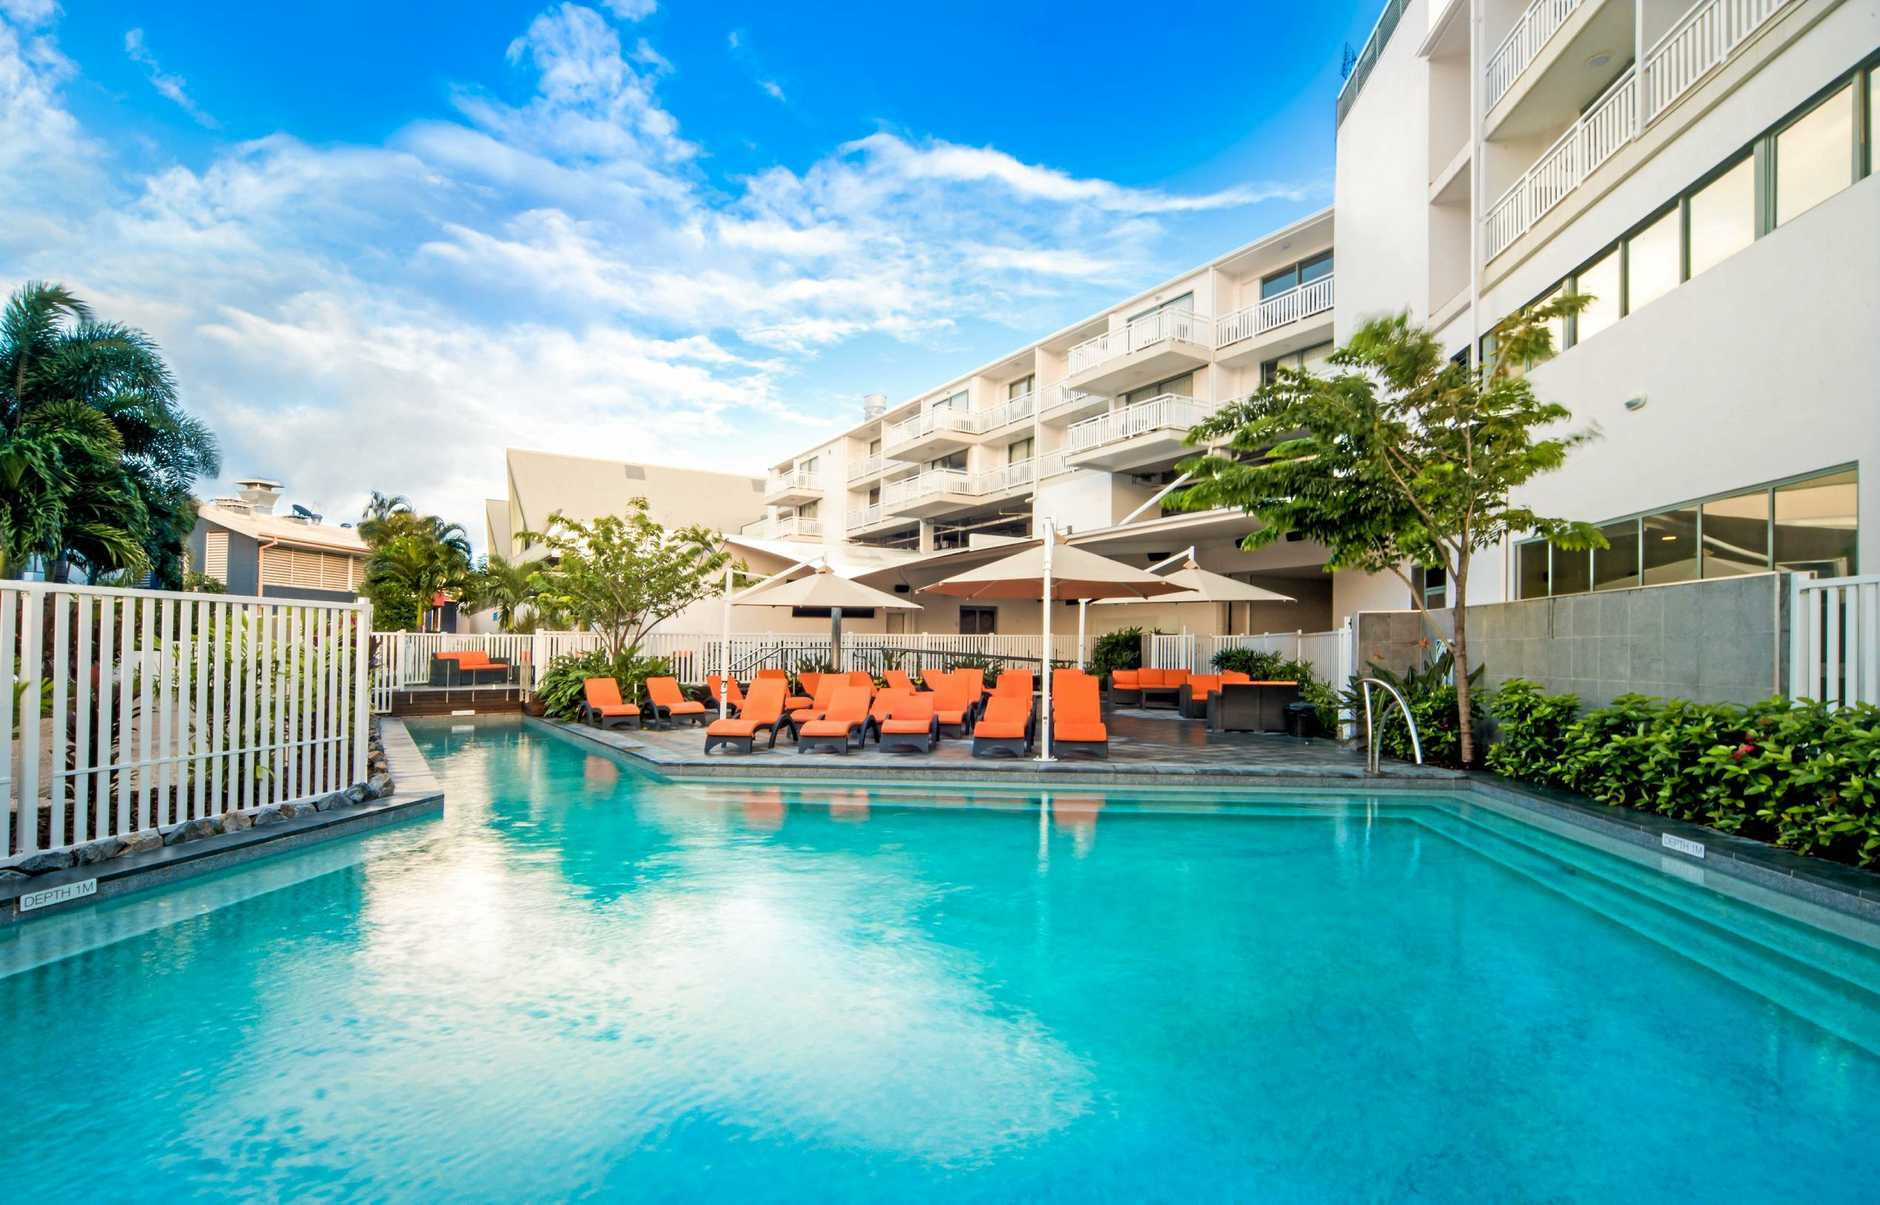 The iconic Airlie Beach Hotel freehold and leasehold rights have been bought by a Queensland hotel group for a combined $22 million.